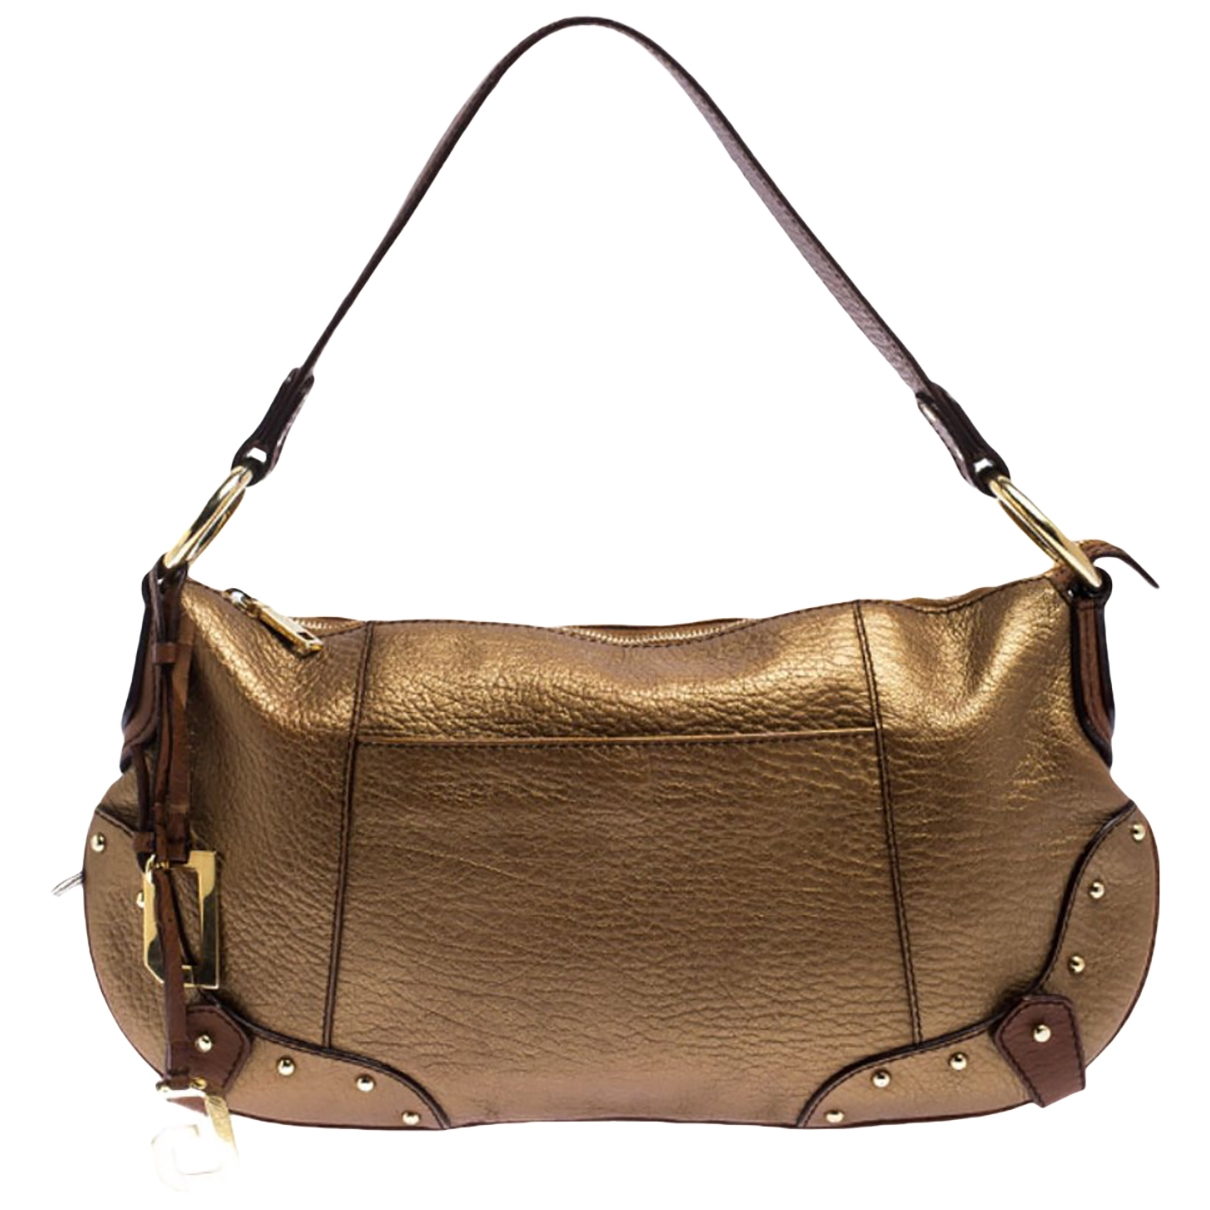 Dolce & Gabbana \N Gold Leather handbag for Women \N